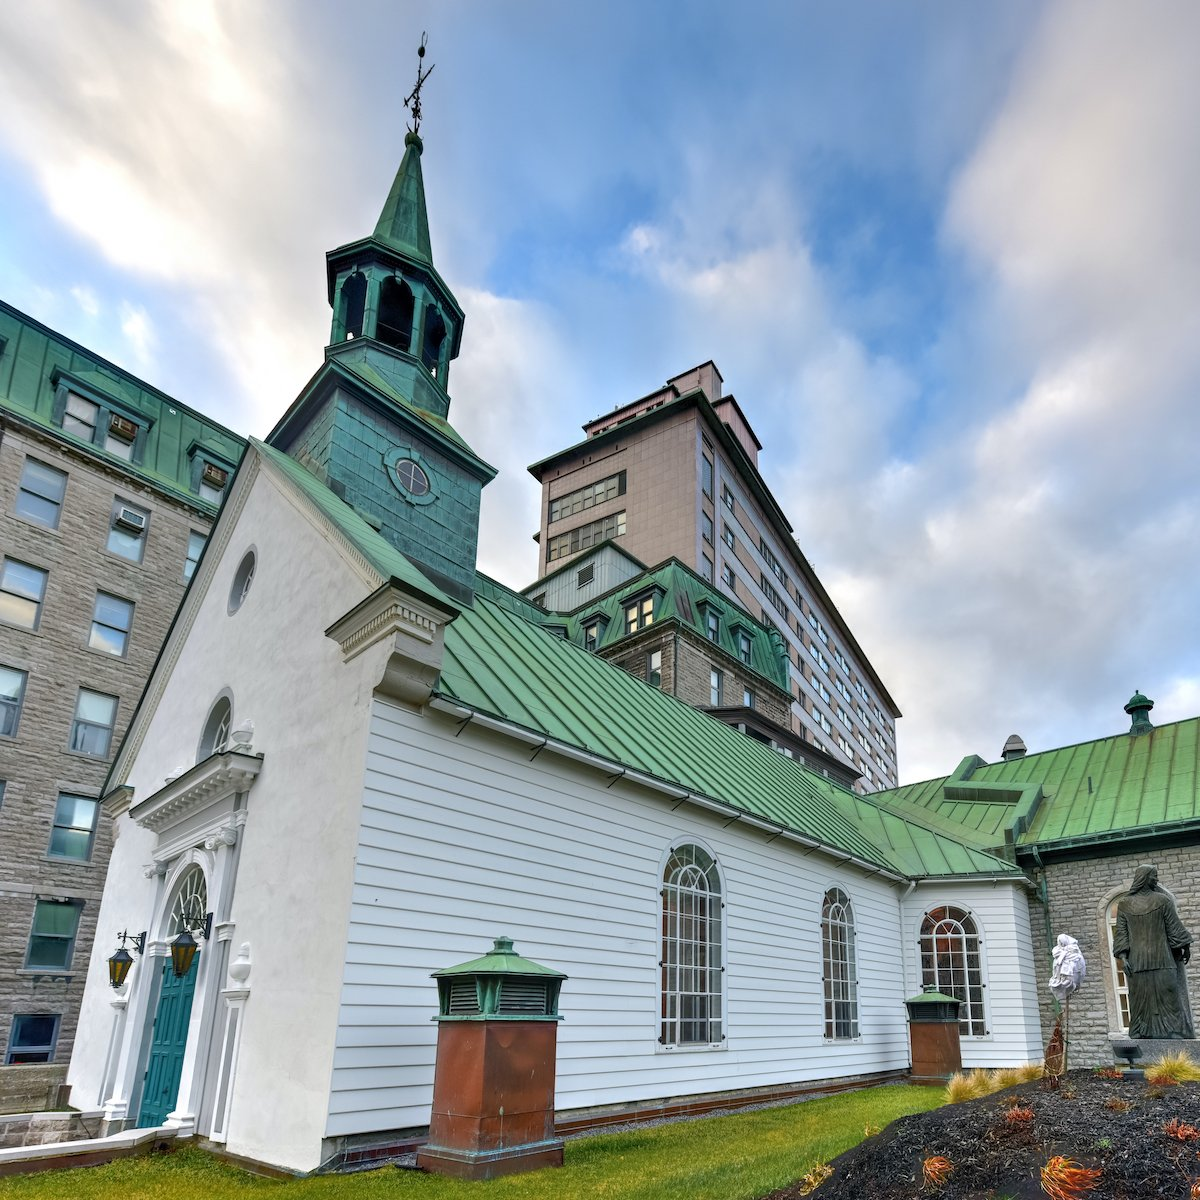 Monastery in Quebec City, Canada.